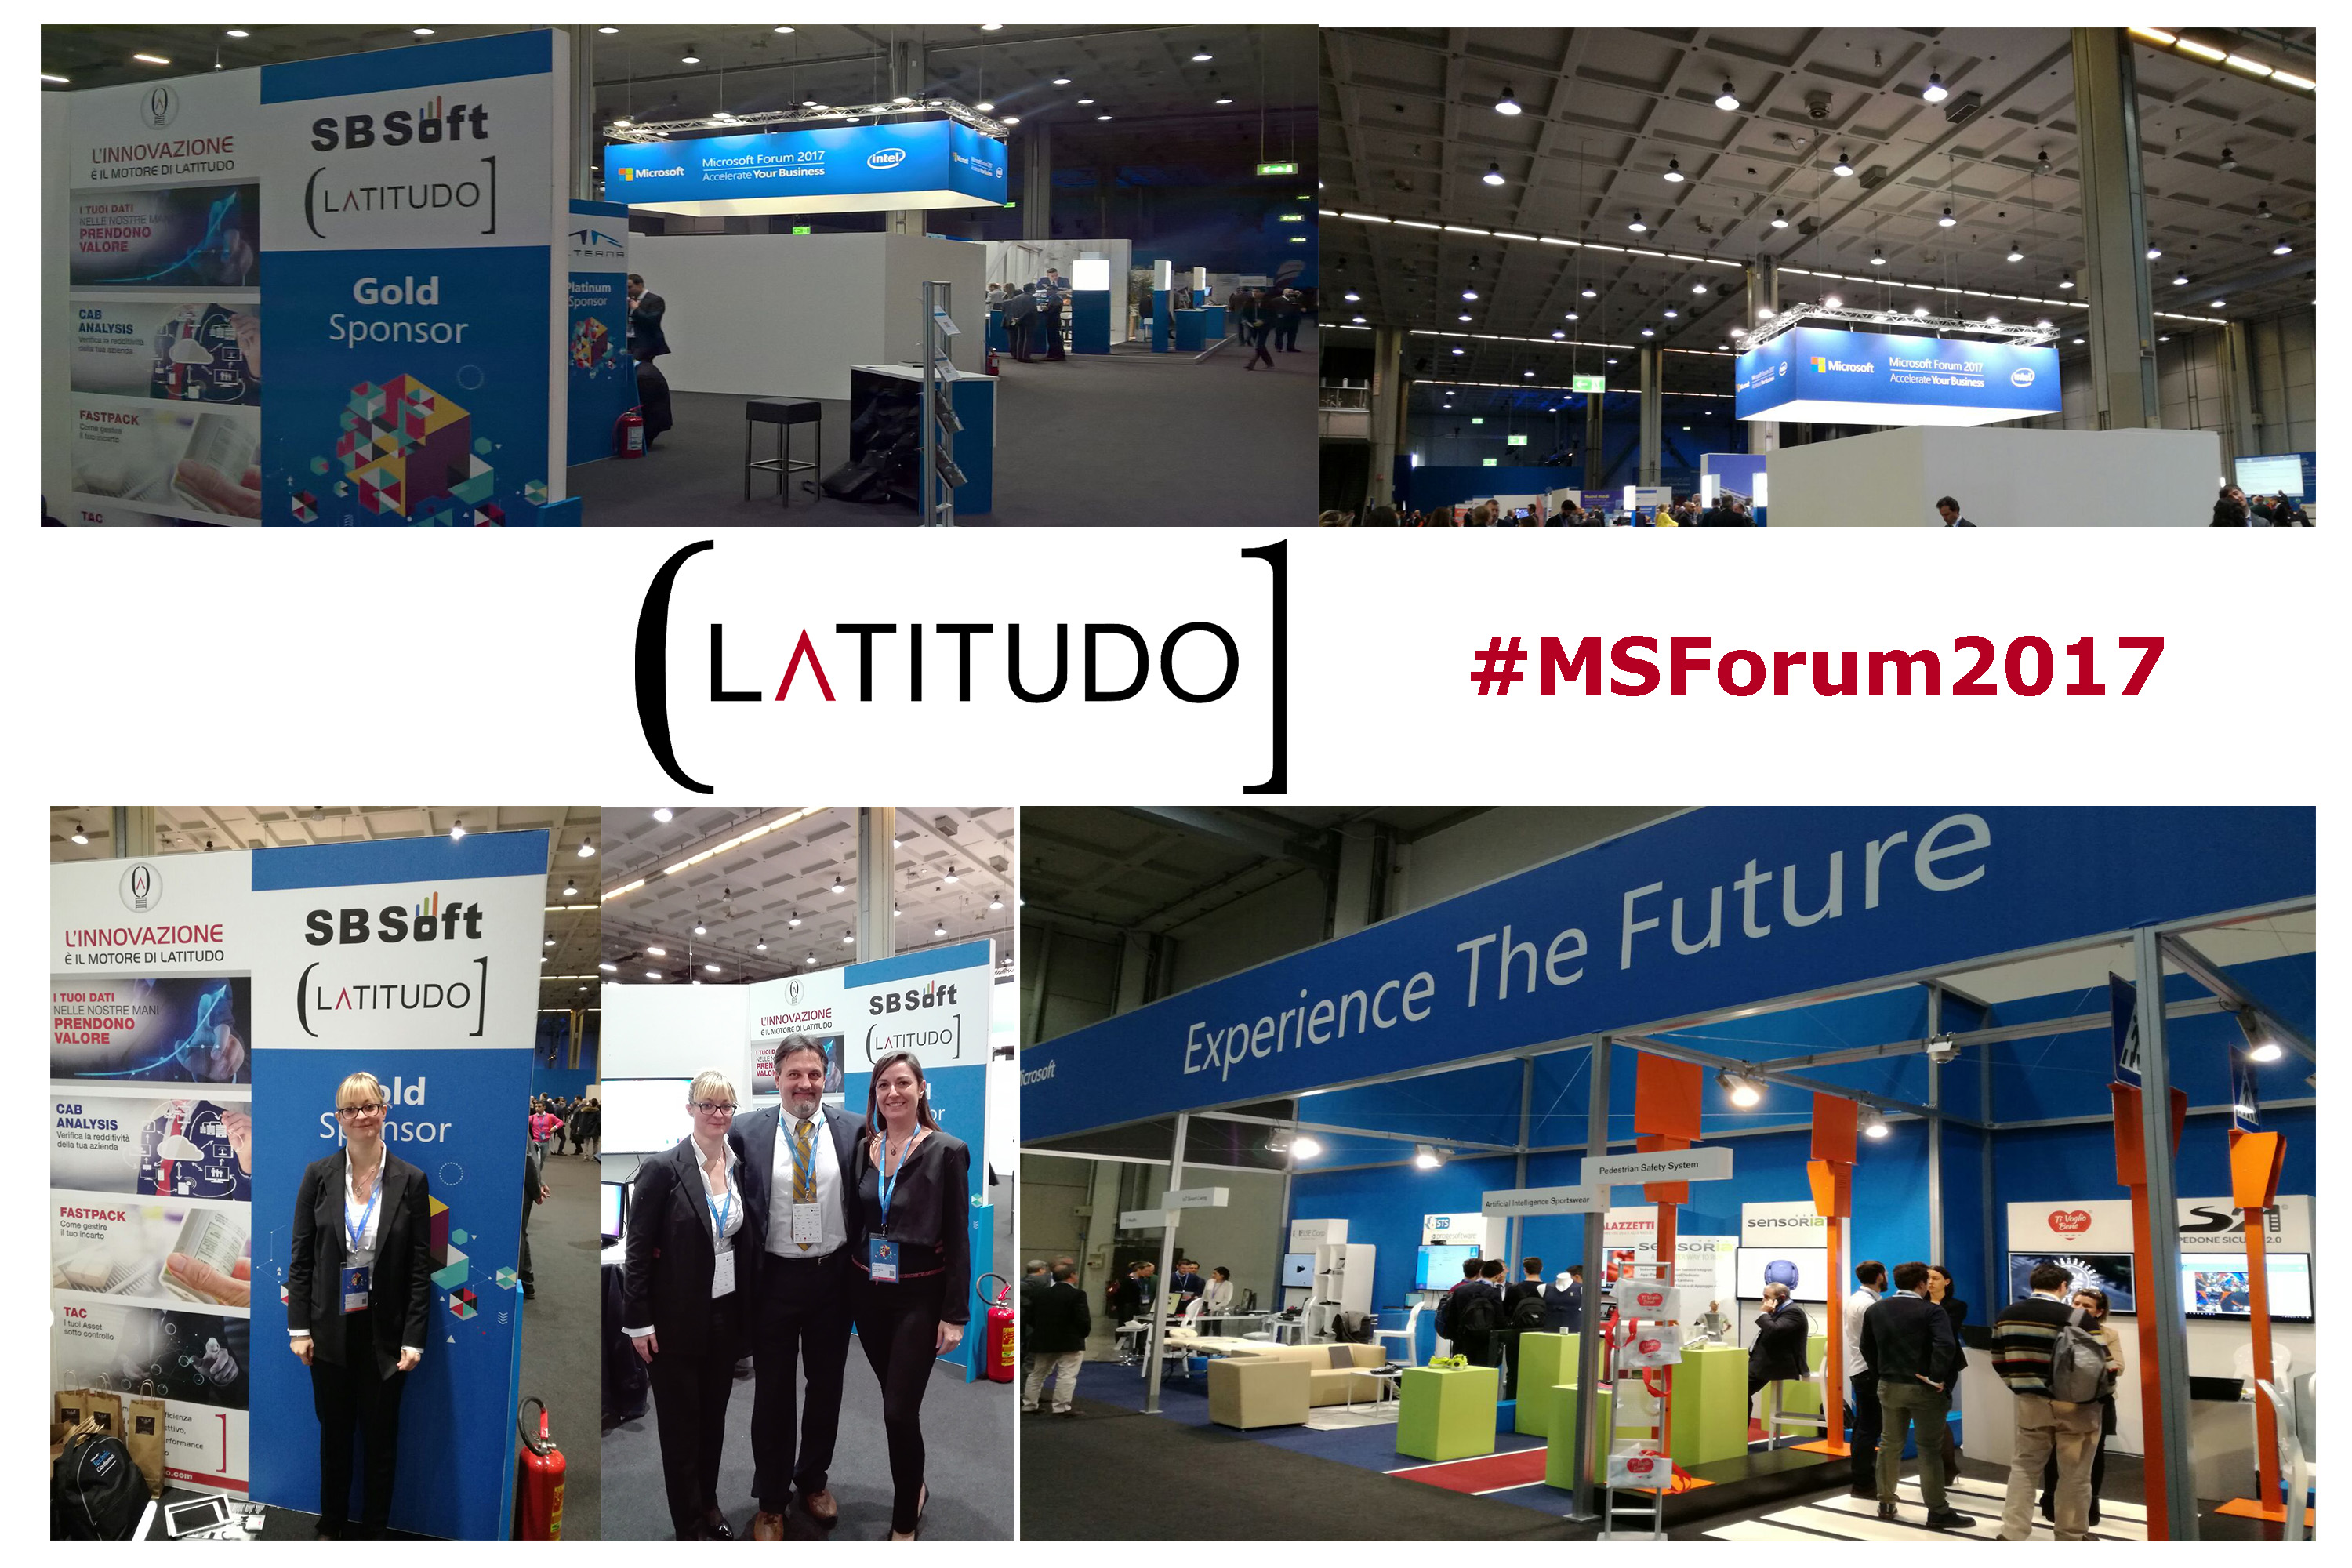 Latitudo ha partecipato al MSForum 2017 come Gold Sponsor